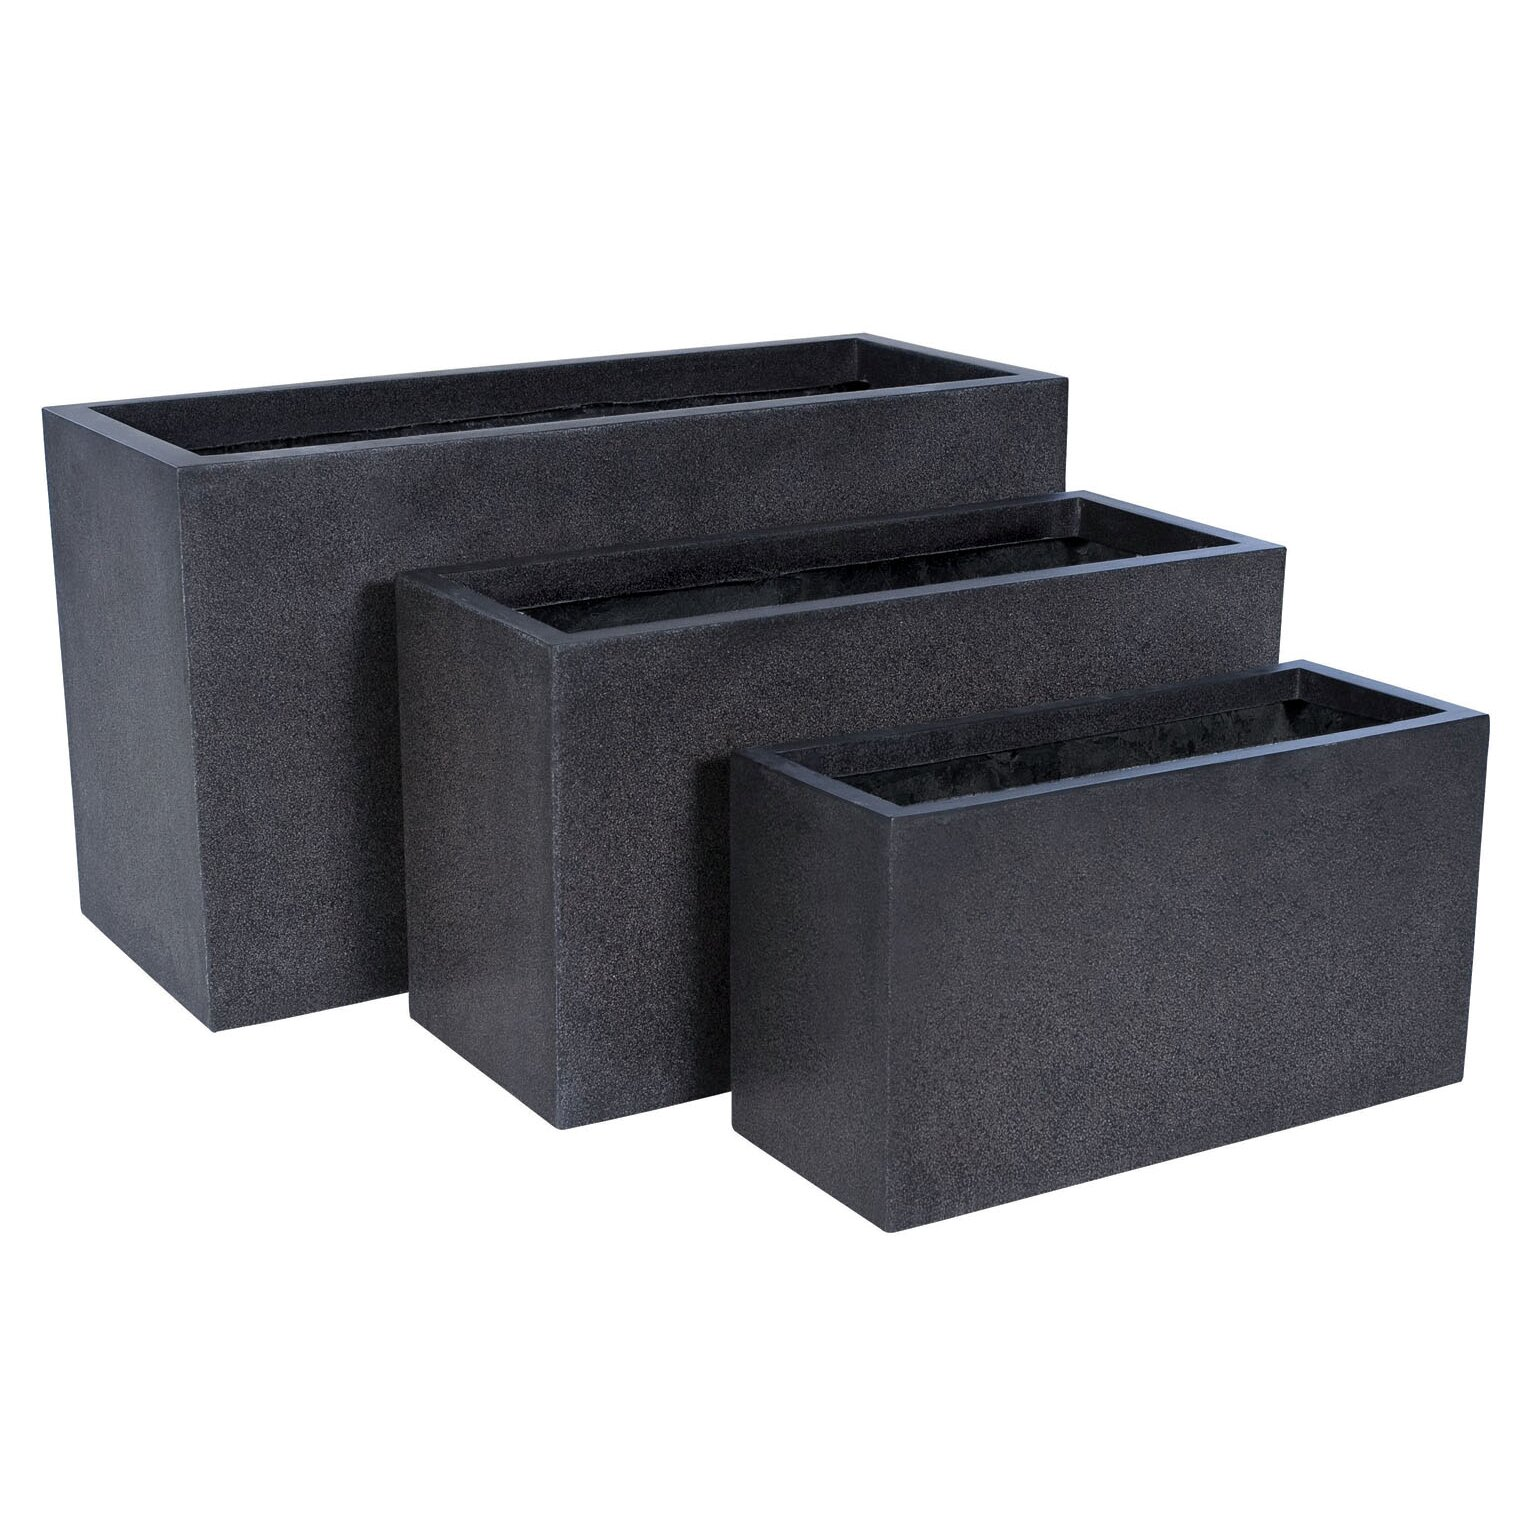 Lux Rectangular Planter Wayfair Uk